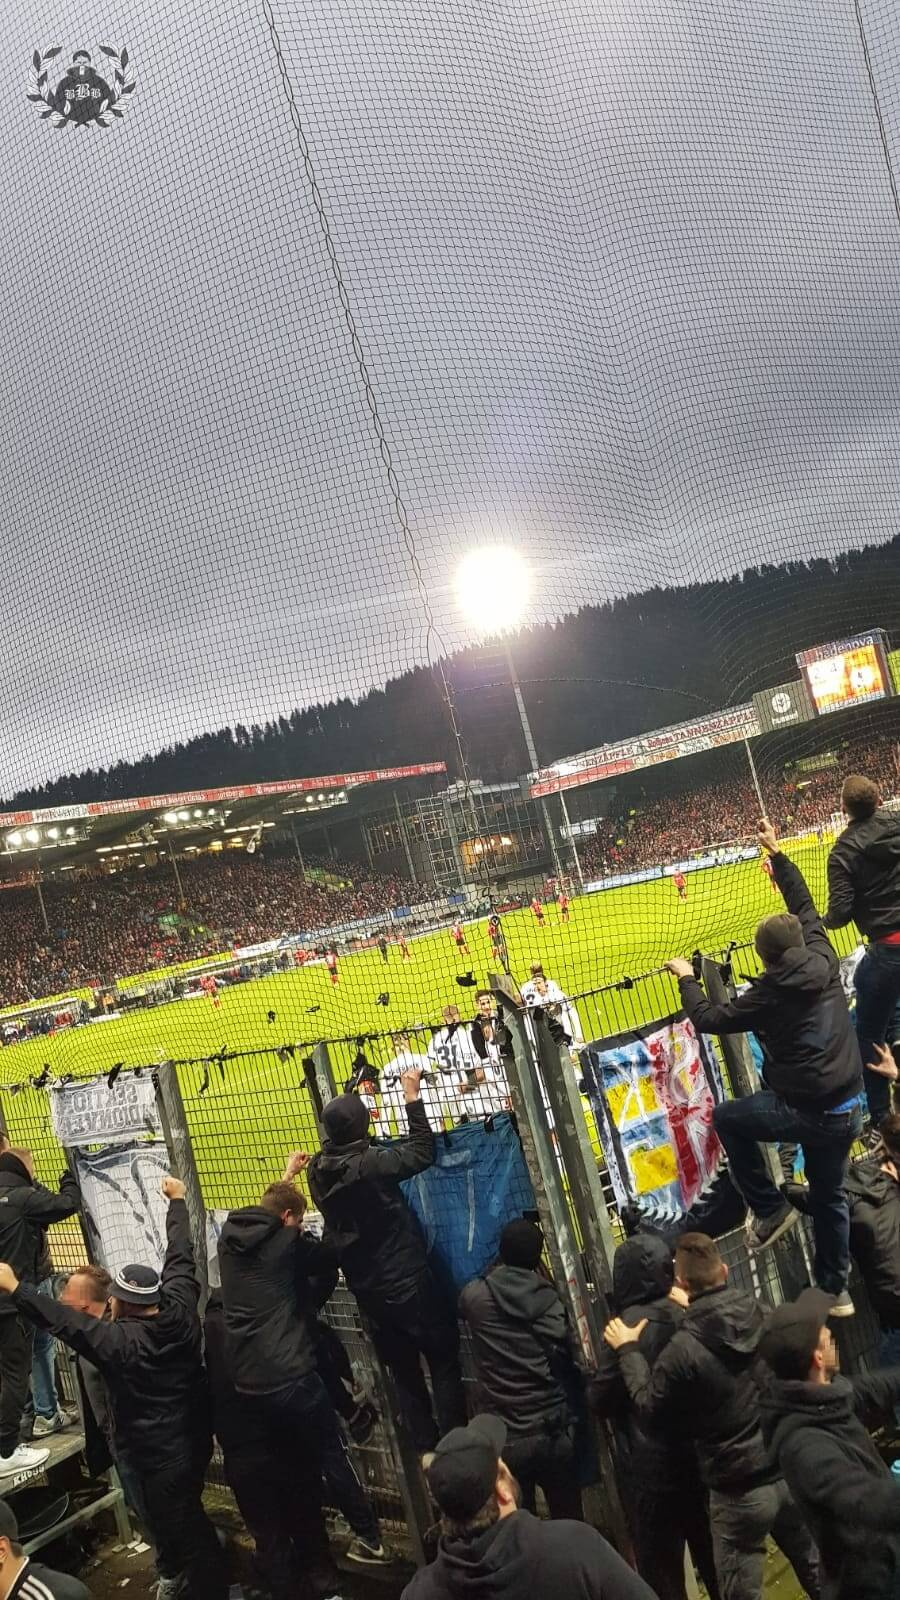 Derbysieg in Freiburg